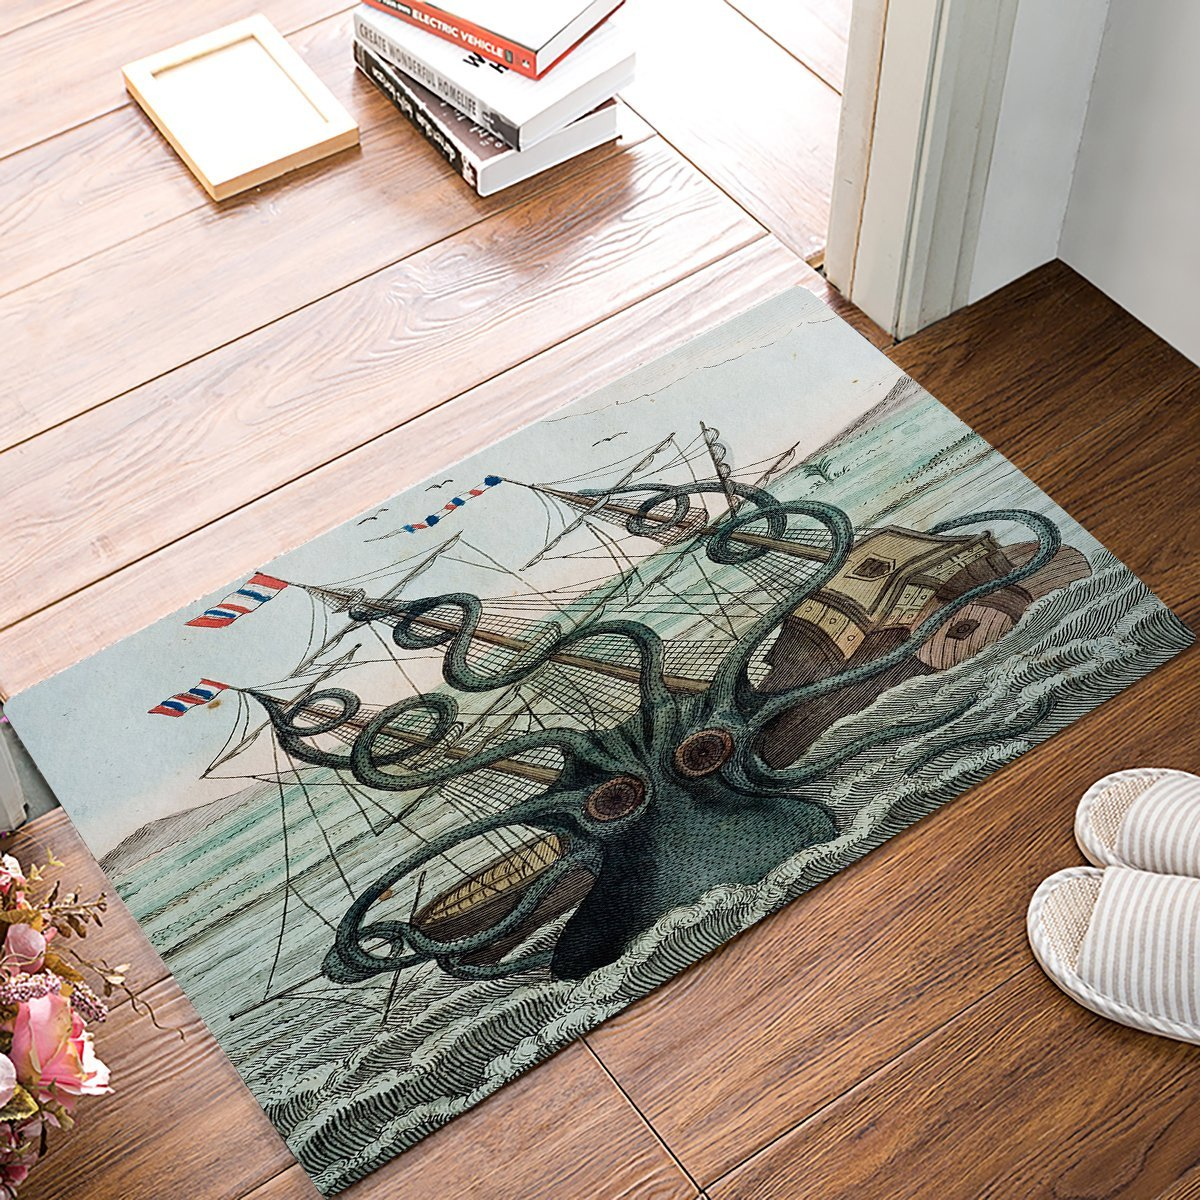 Sail Boat Waves And Octopus Old Look Marine Life Door Mats Kitchen Floor Bath Entrance Rug Mat Absorbent Indoor Bathroom Rubber